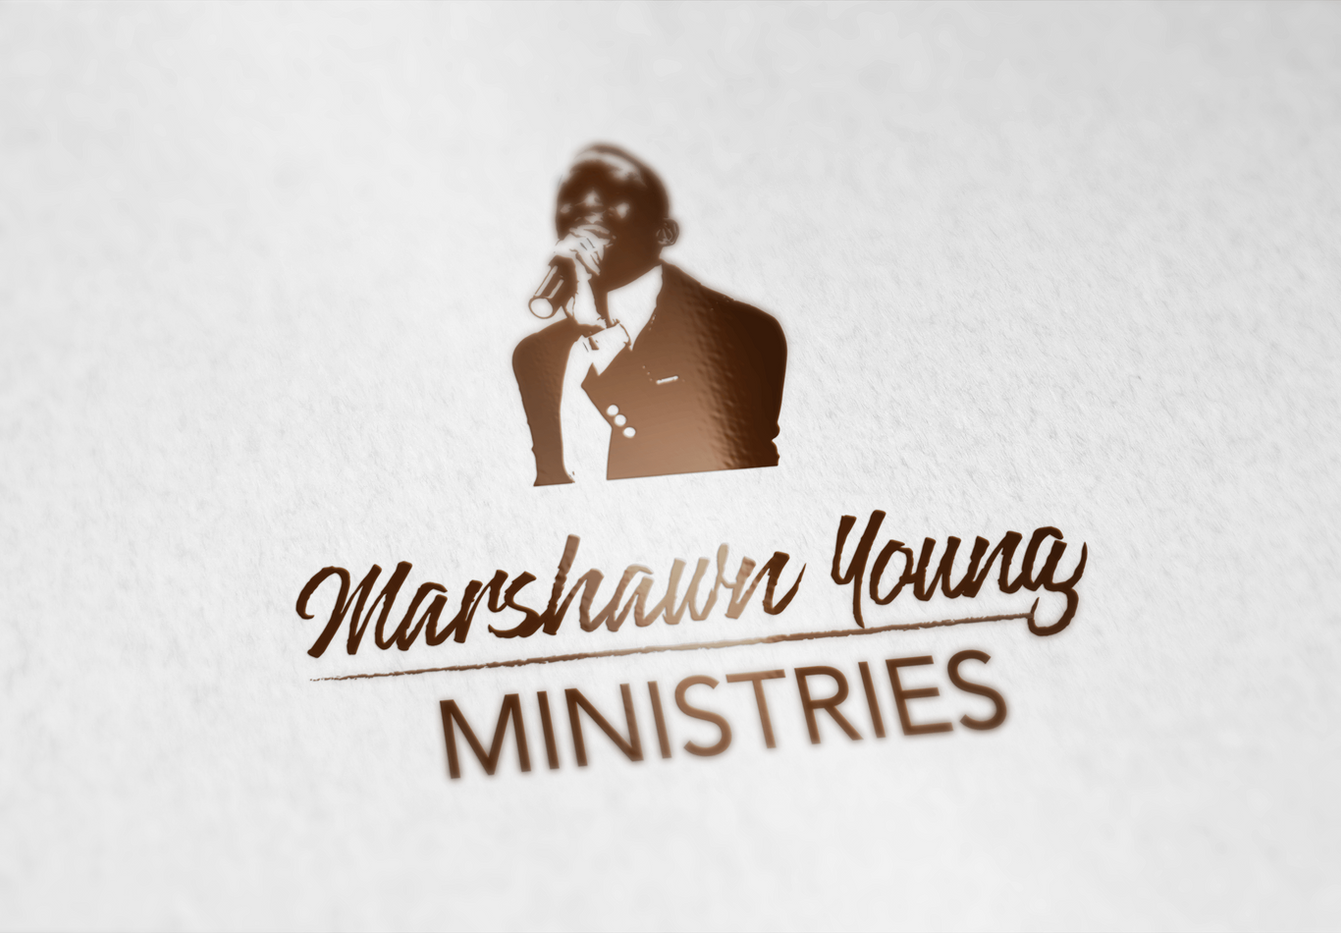 Marshawn Young Ministries